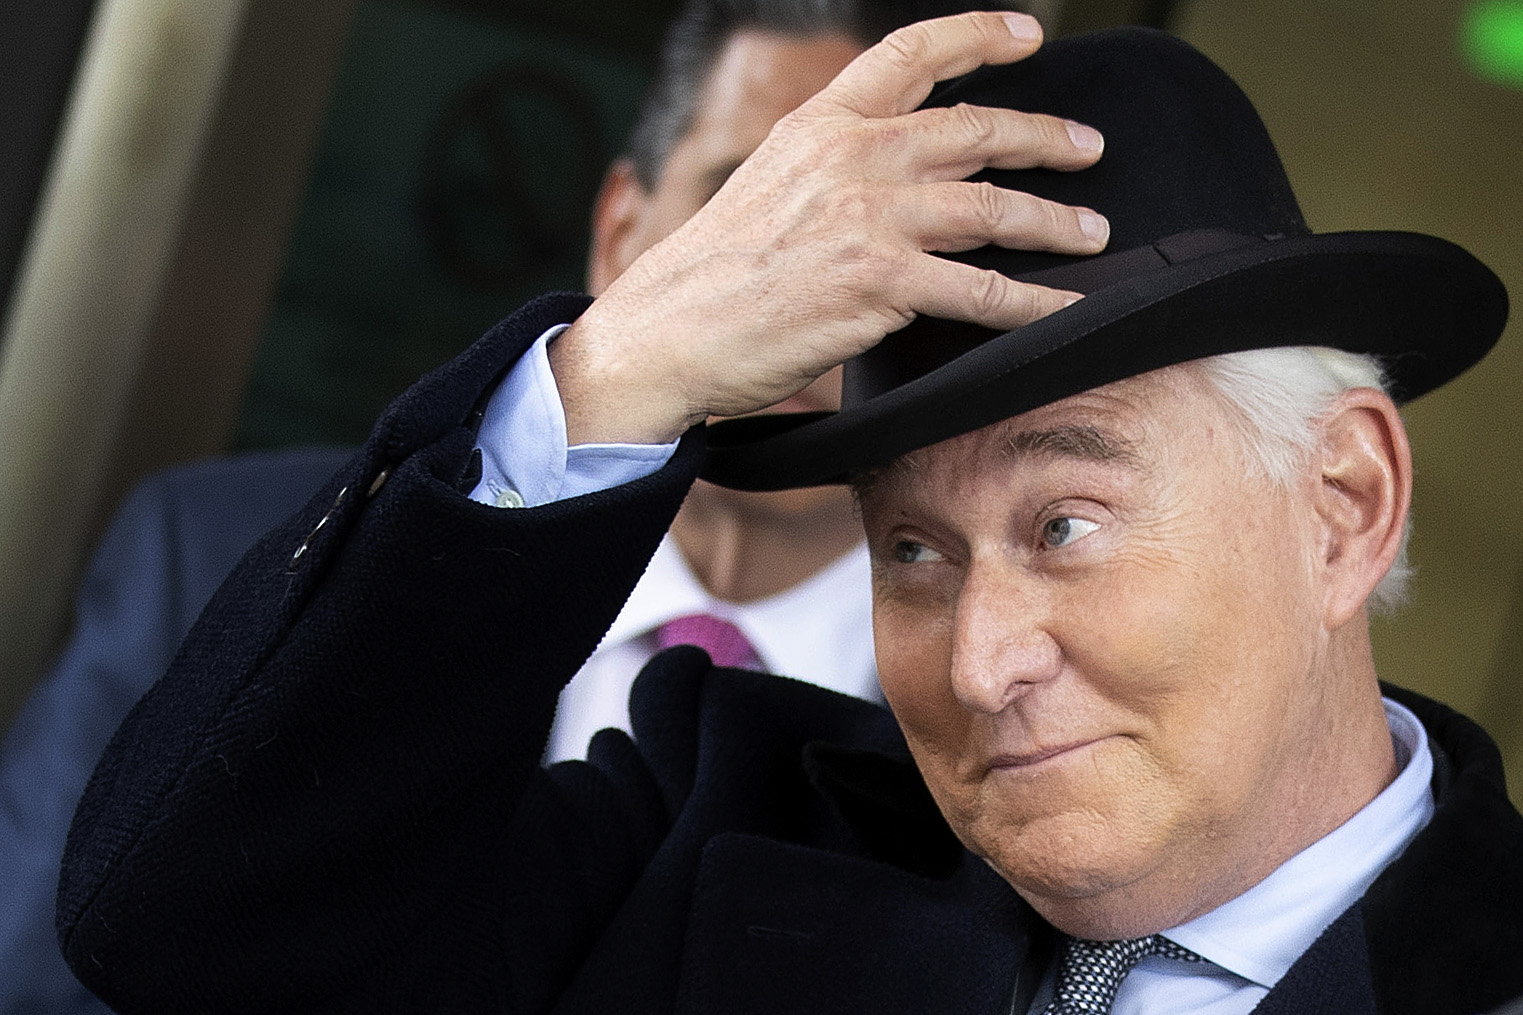 Roger Stone, former adviser and confidante to U.S. President Donald Trump, leaves the Federal District Court for the District of Columbia after being sentenced February 20, 2020 in Washington, DC. (Chip Somodevilla/Getty Images)